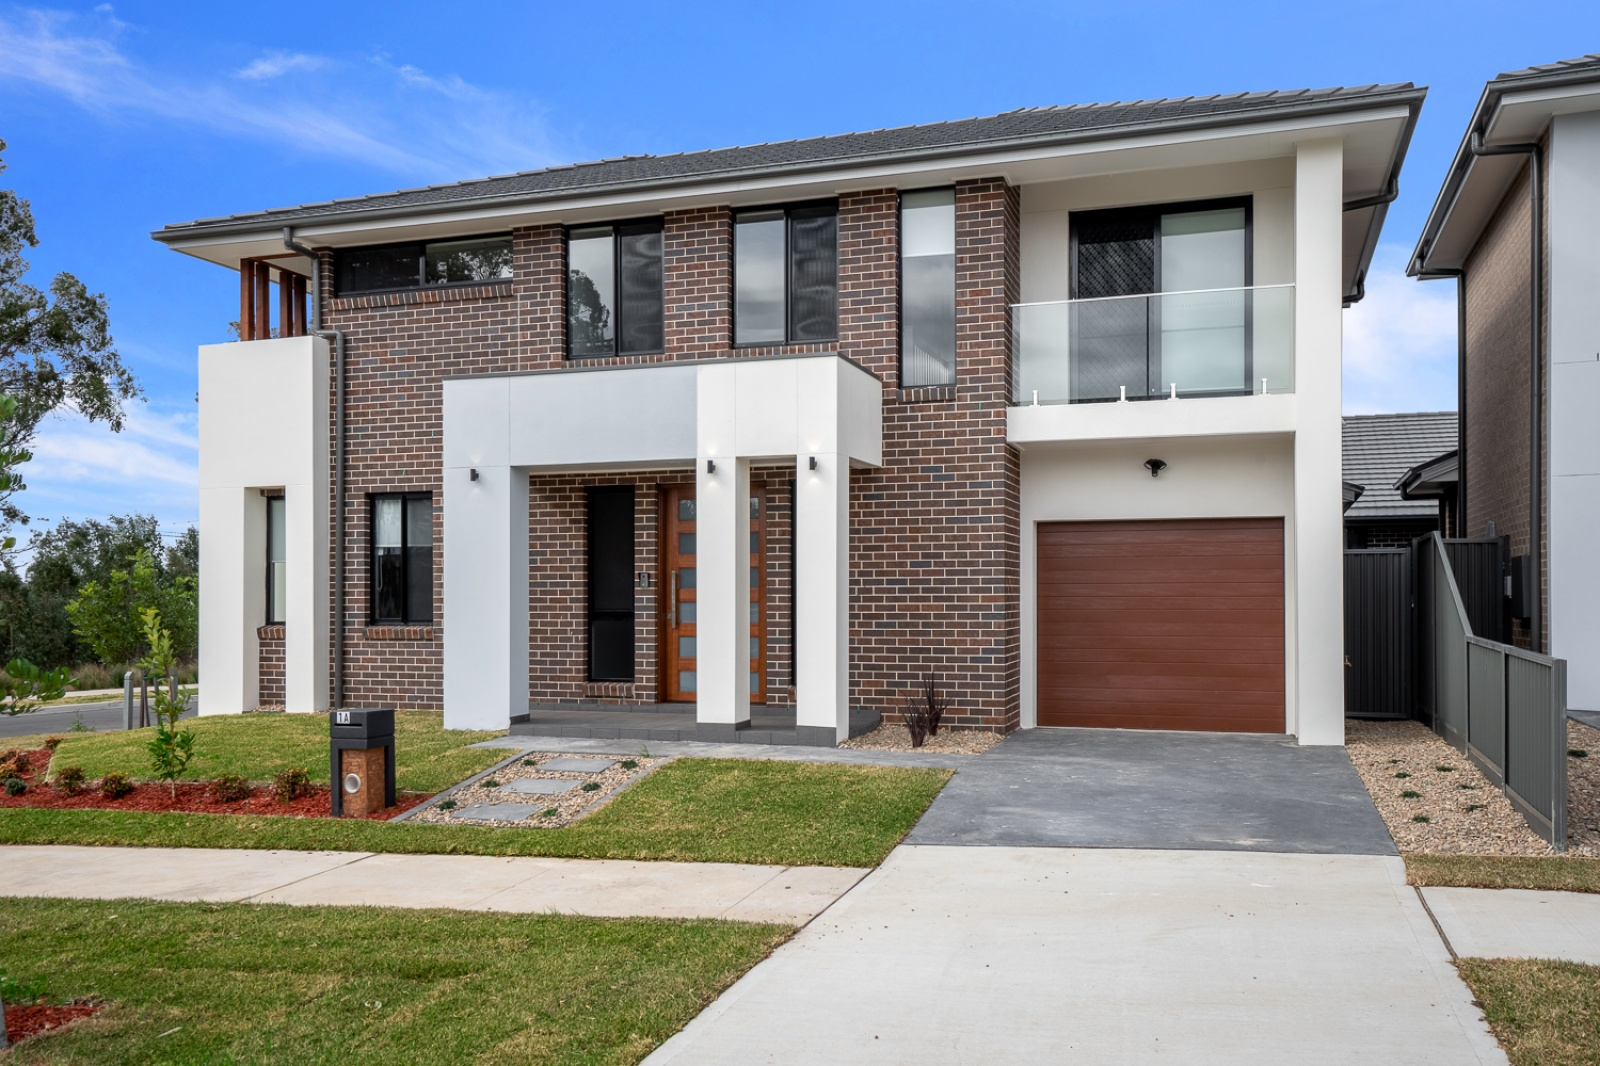 1a & 1b Loveday Street,Oran Park,NSW,4 Bedrooms Bedrooms,3 BathroomsBathrooms,House,Loveday Street,1467